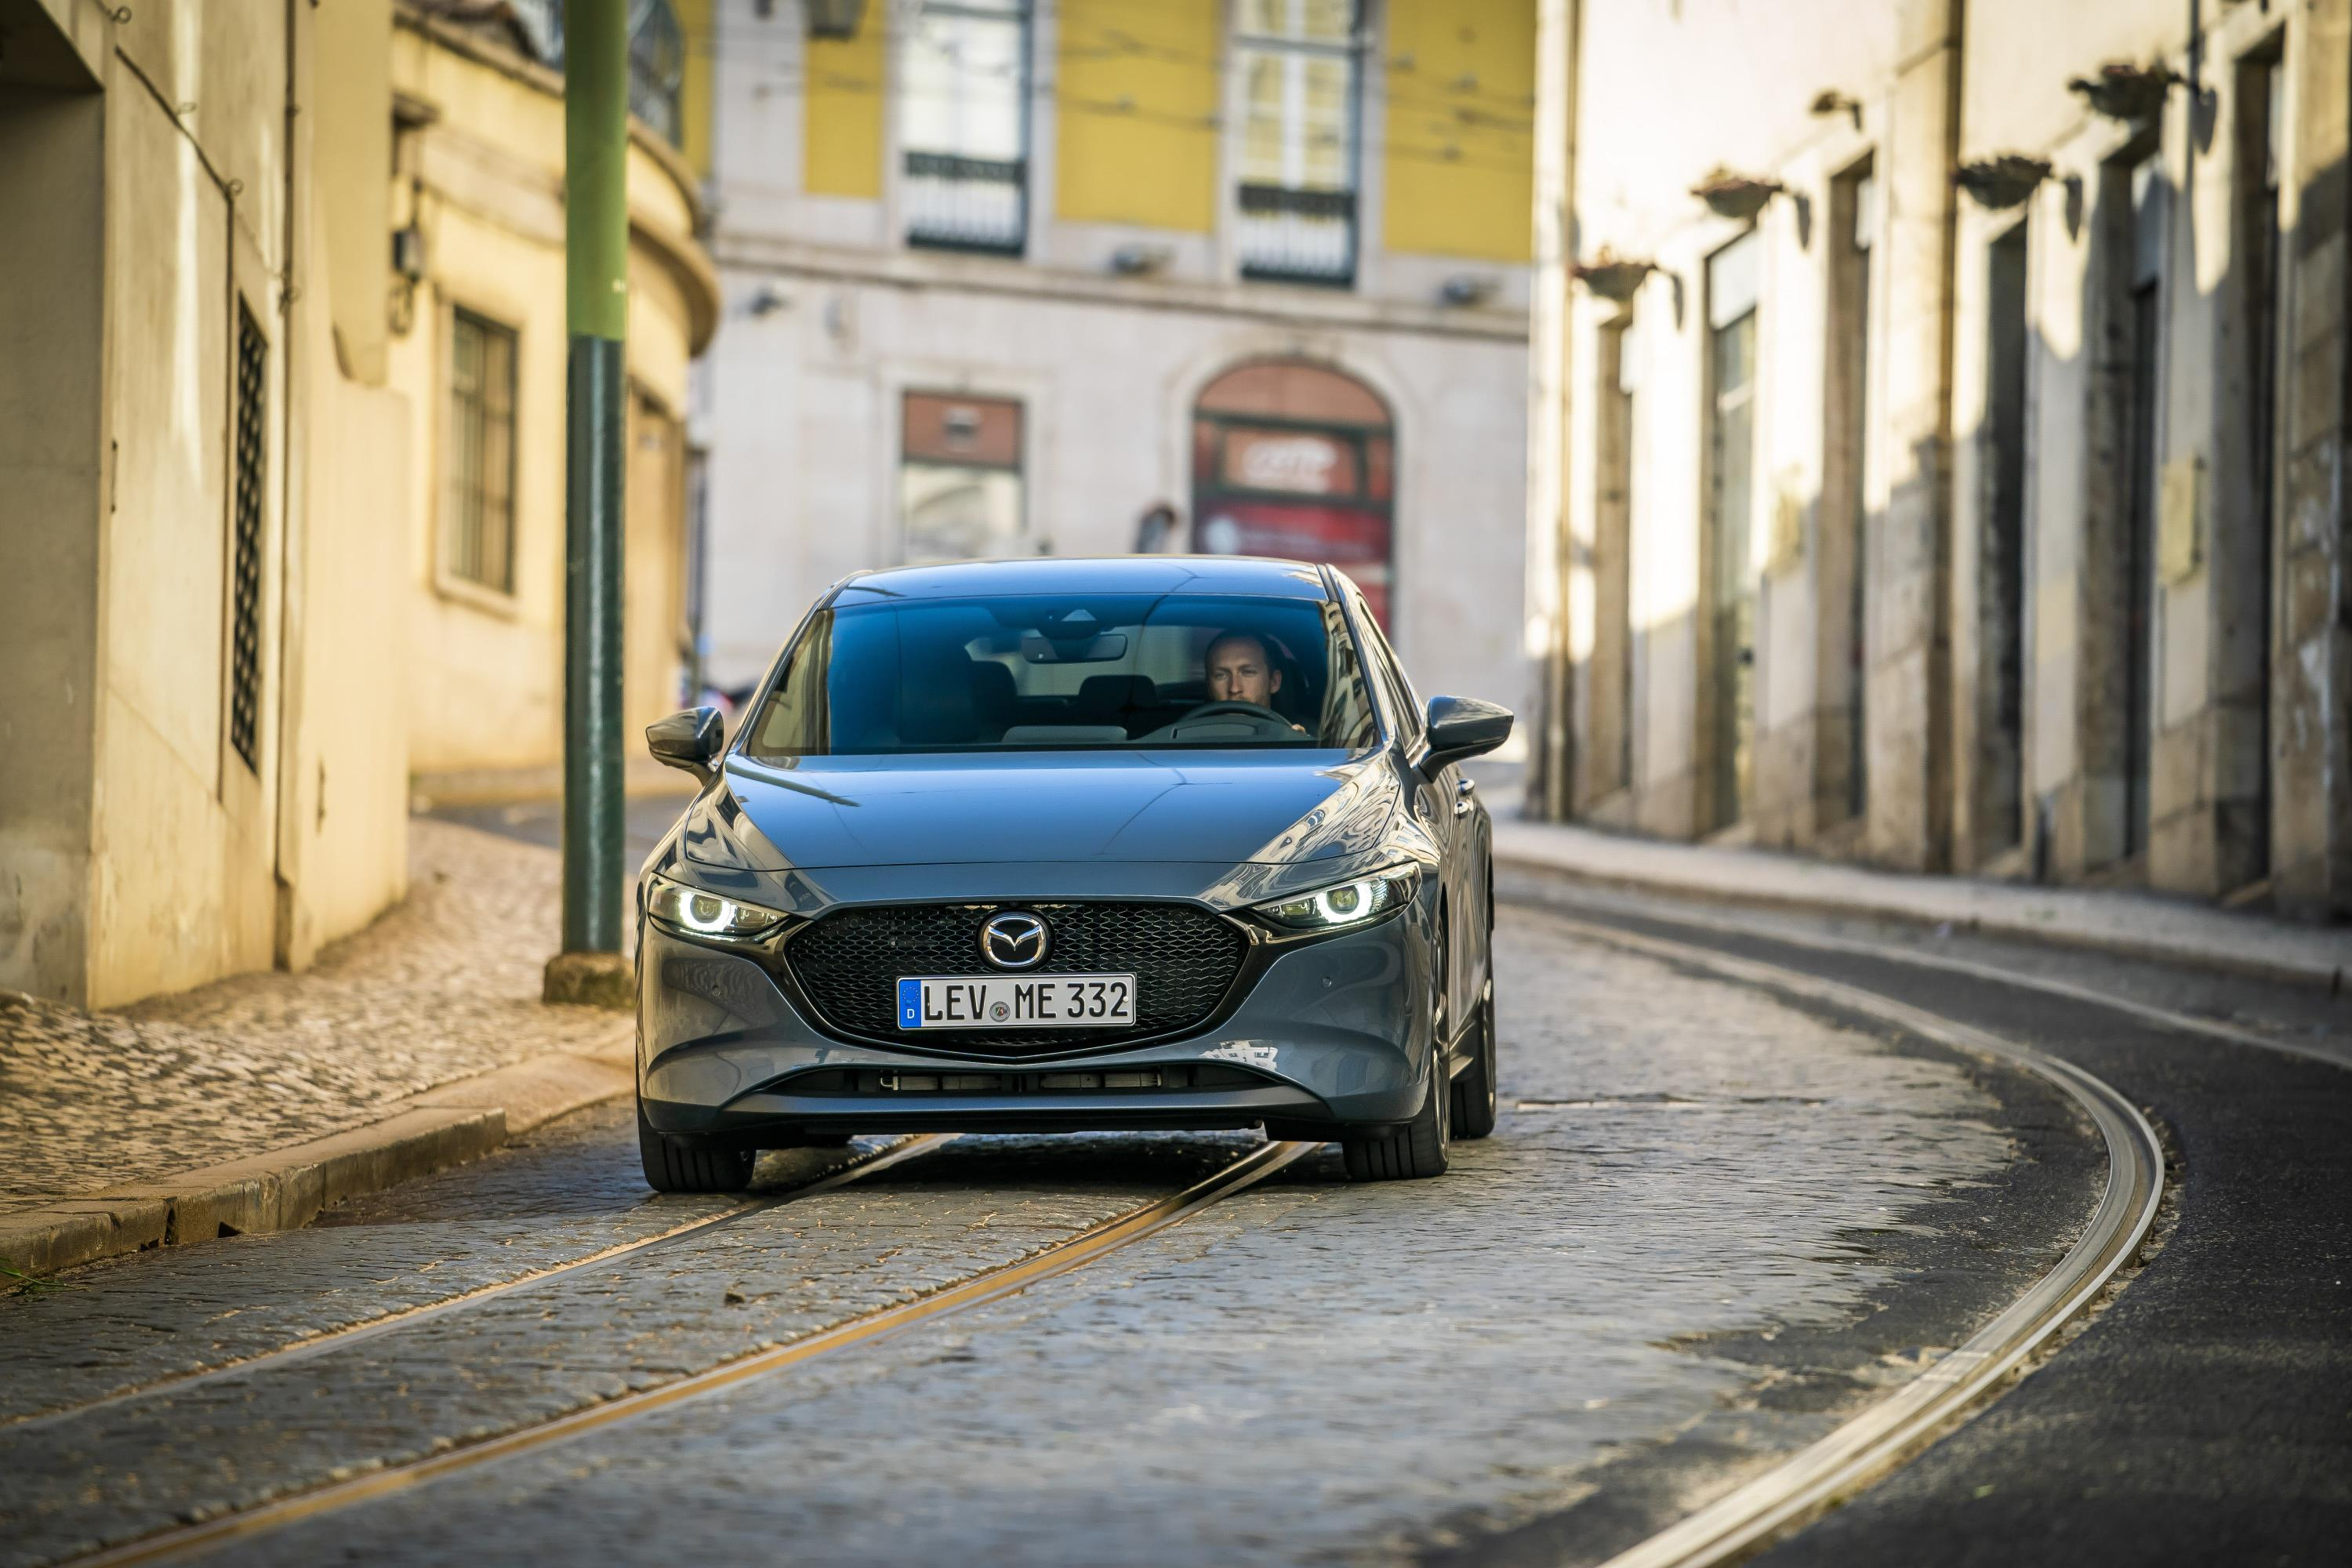 The exciting new Mazda3 SkyActiv-X will be in Ireland before the end of the year!